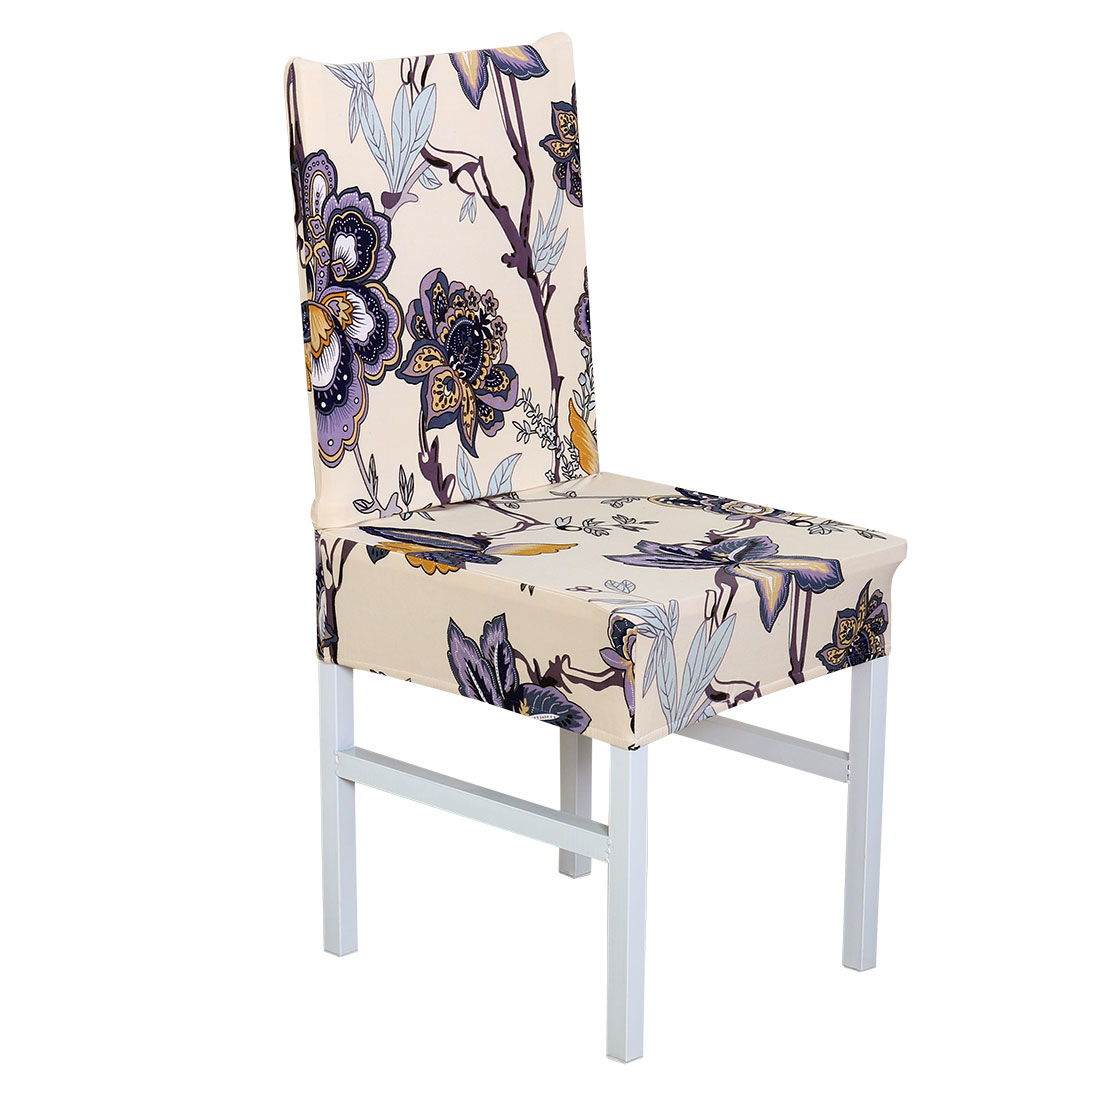 Removable Stretch Chair Cover Protector Seat Slipcover for Wedding Hotel Home